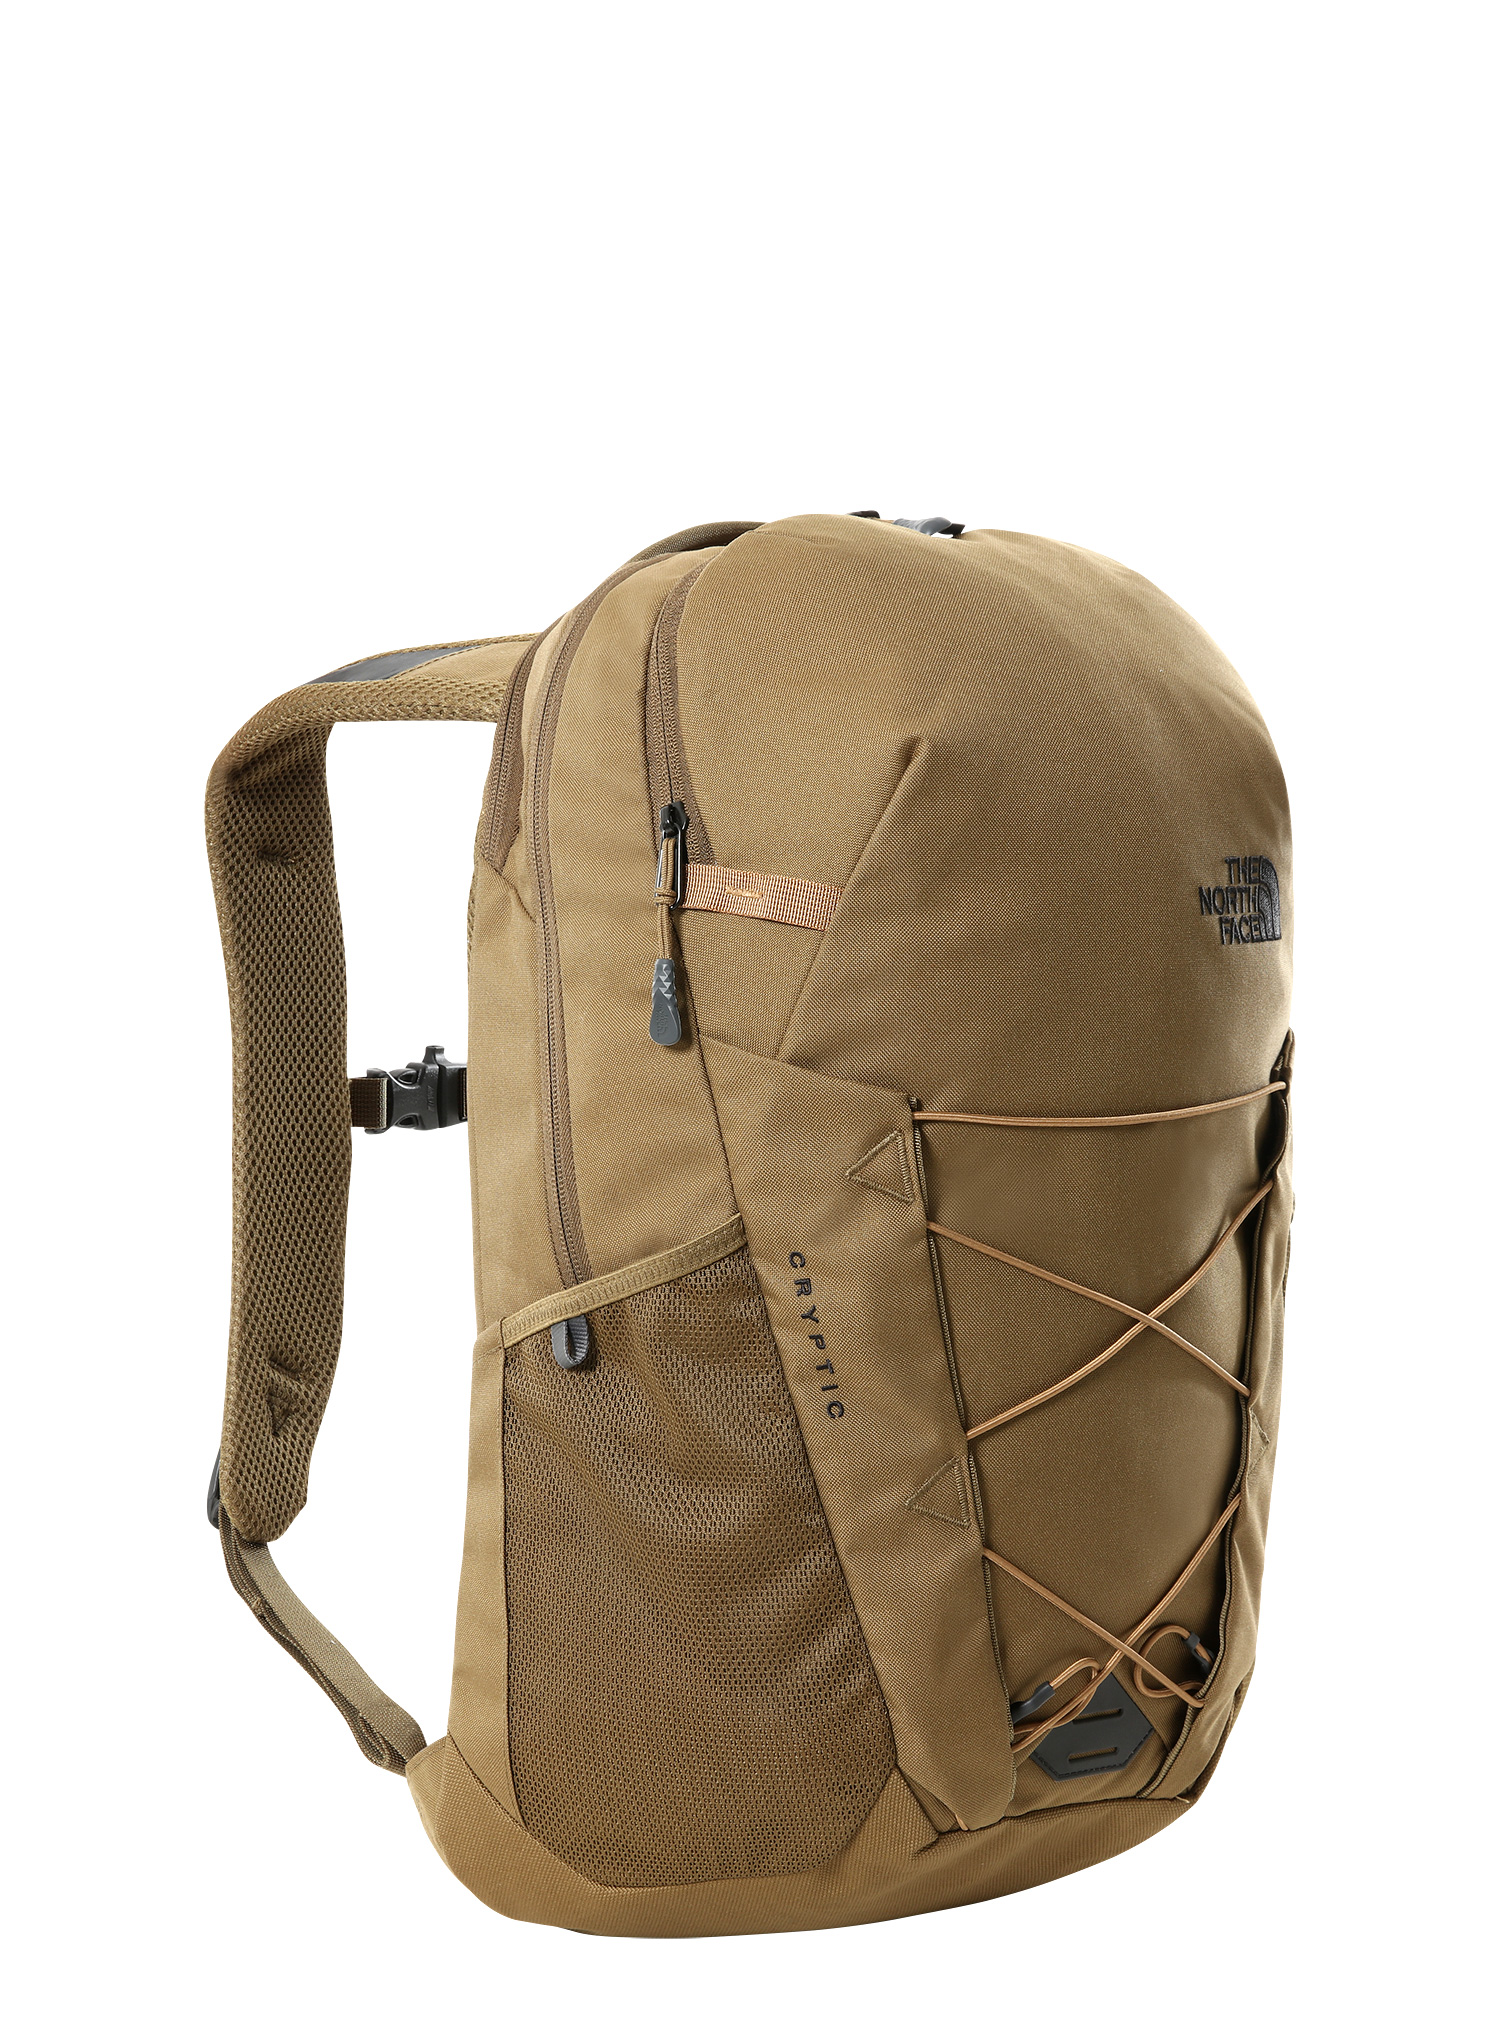 Plecak The North Face Cryptic - military olive/brown - zdjęcie nr. 1